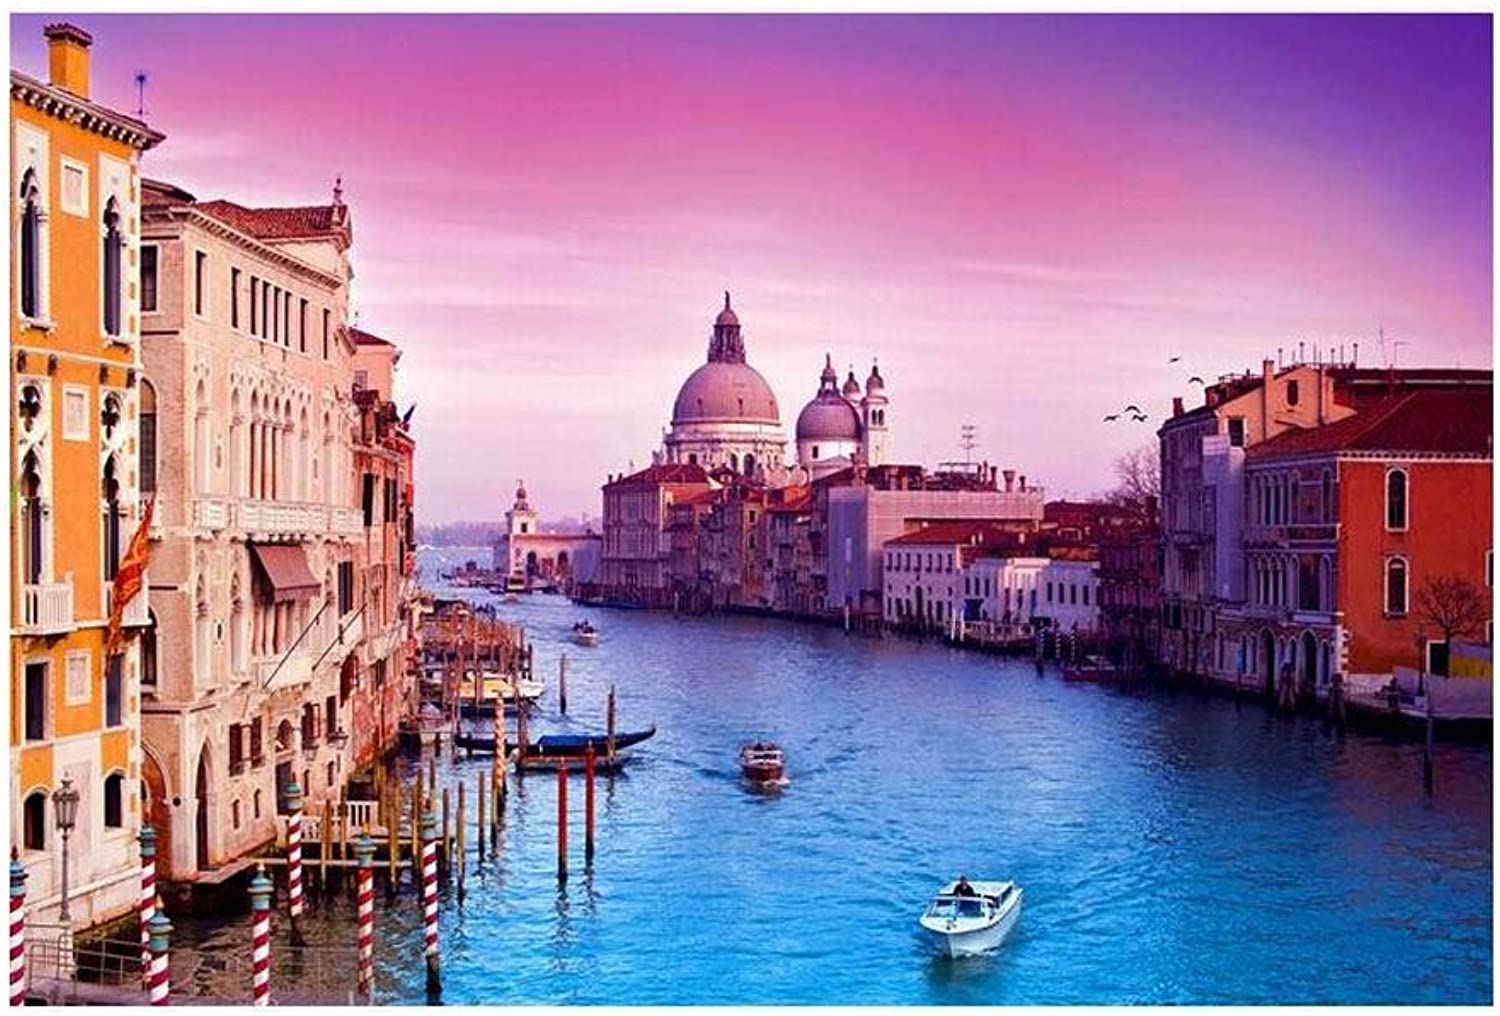 [Venice] 1000 Piece Wooden Jigsaw Puzzles Classic Jigsaw Puzzles Toy